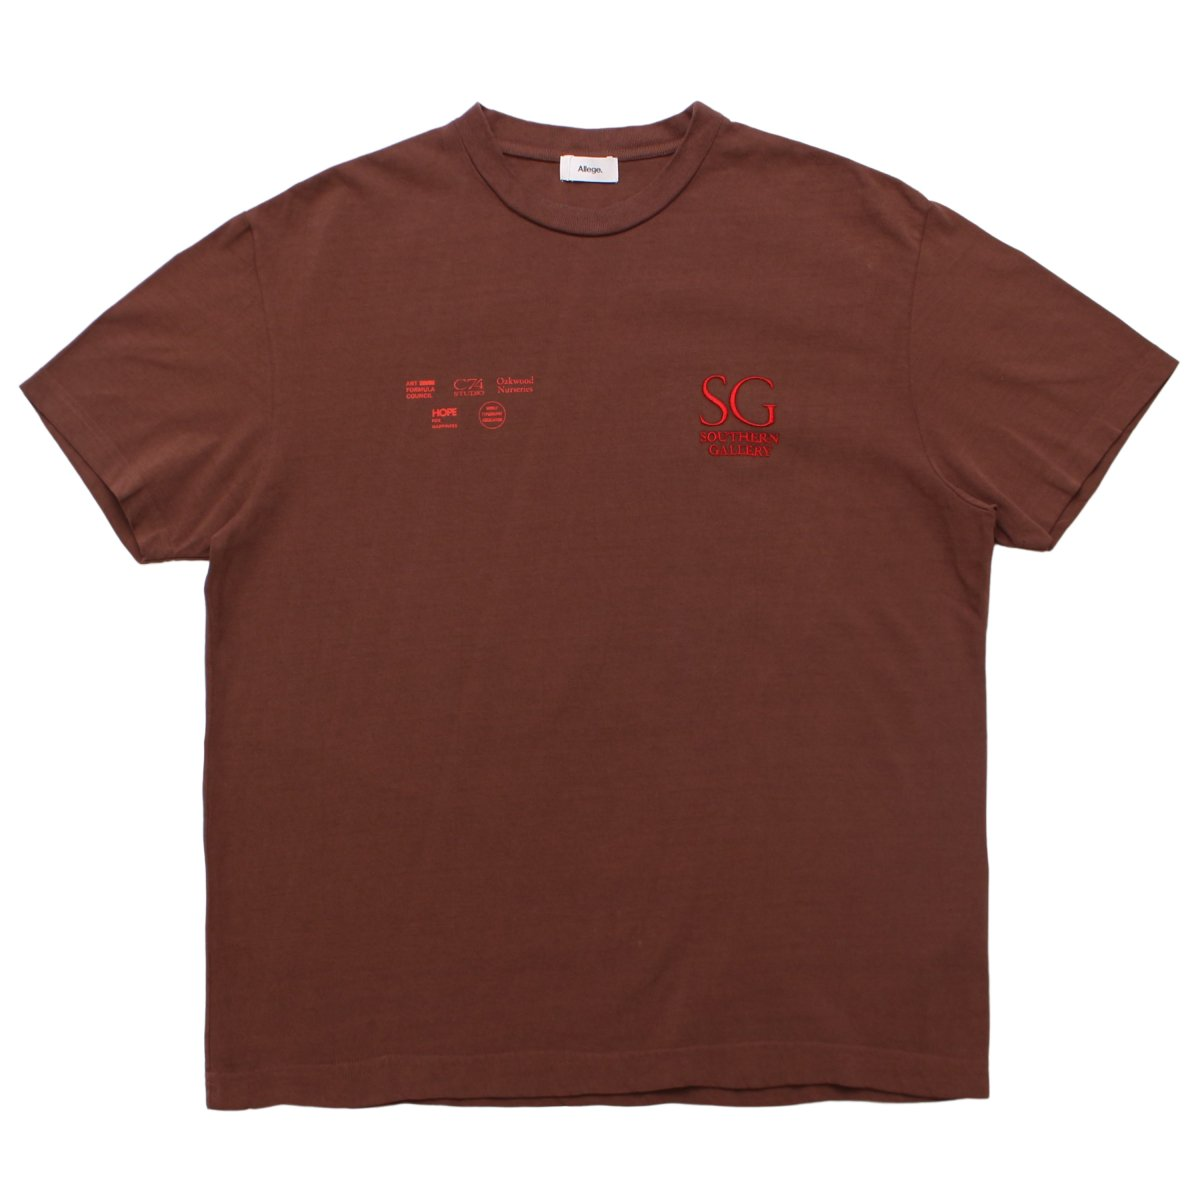 southern gallery tee